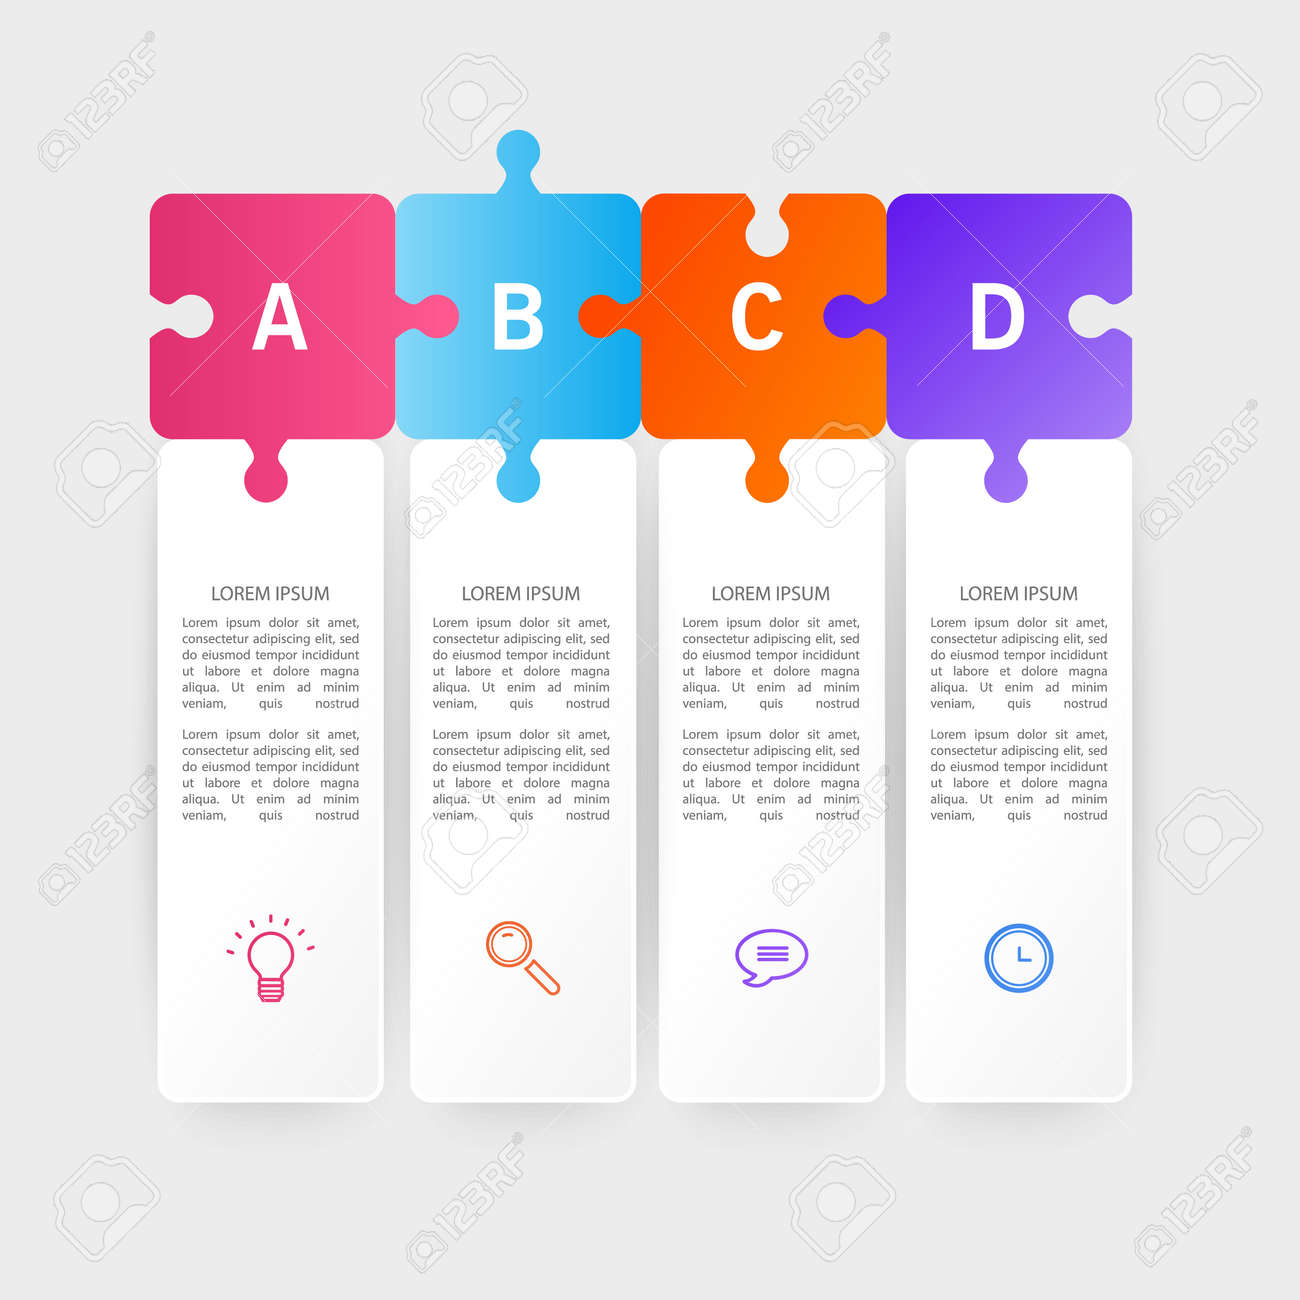 Infographic design template with icons and 4 options or steps. Can be used for process diagram, presentations, workflow layout or banner, Vector illustrations - 171657236